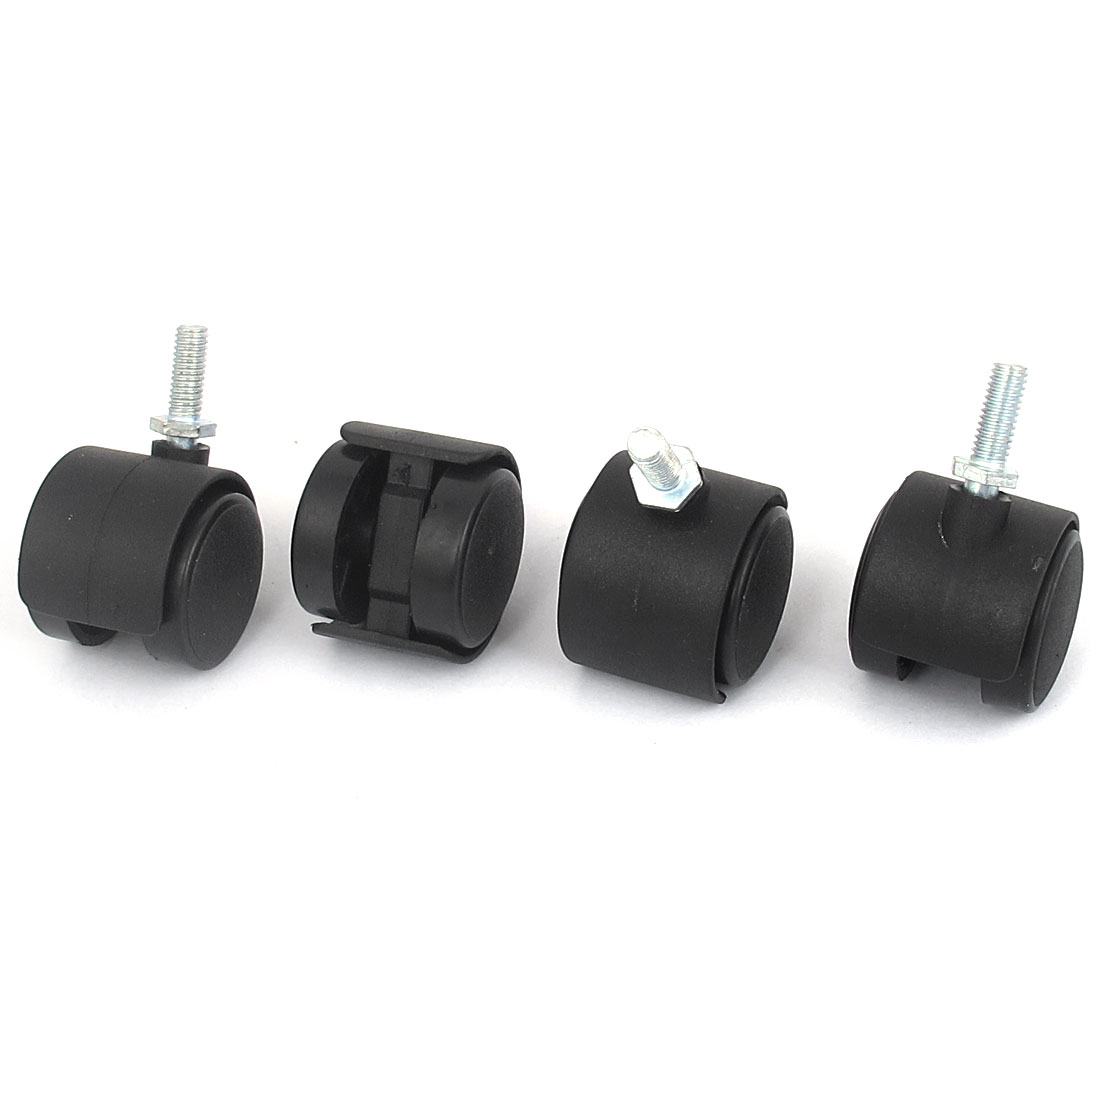 Office Chair Swivel Twin Wheel Caster M6x15mm Threaded Stem Black 4pcs